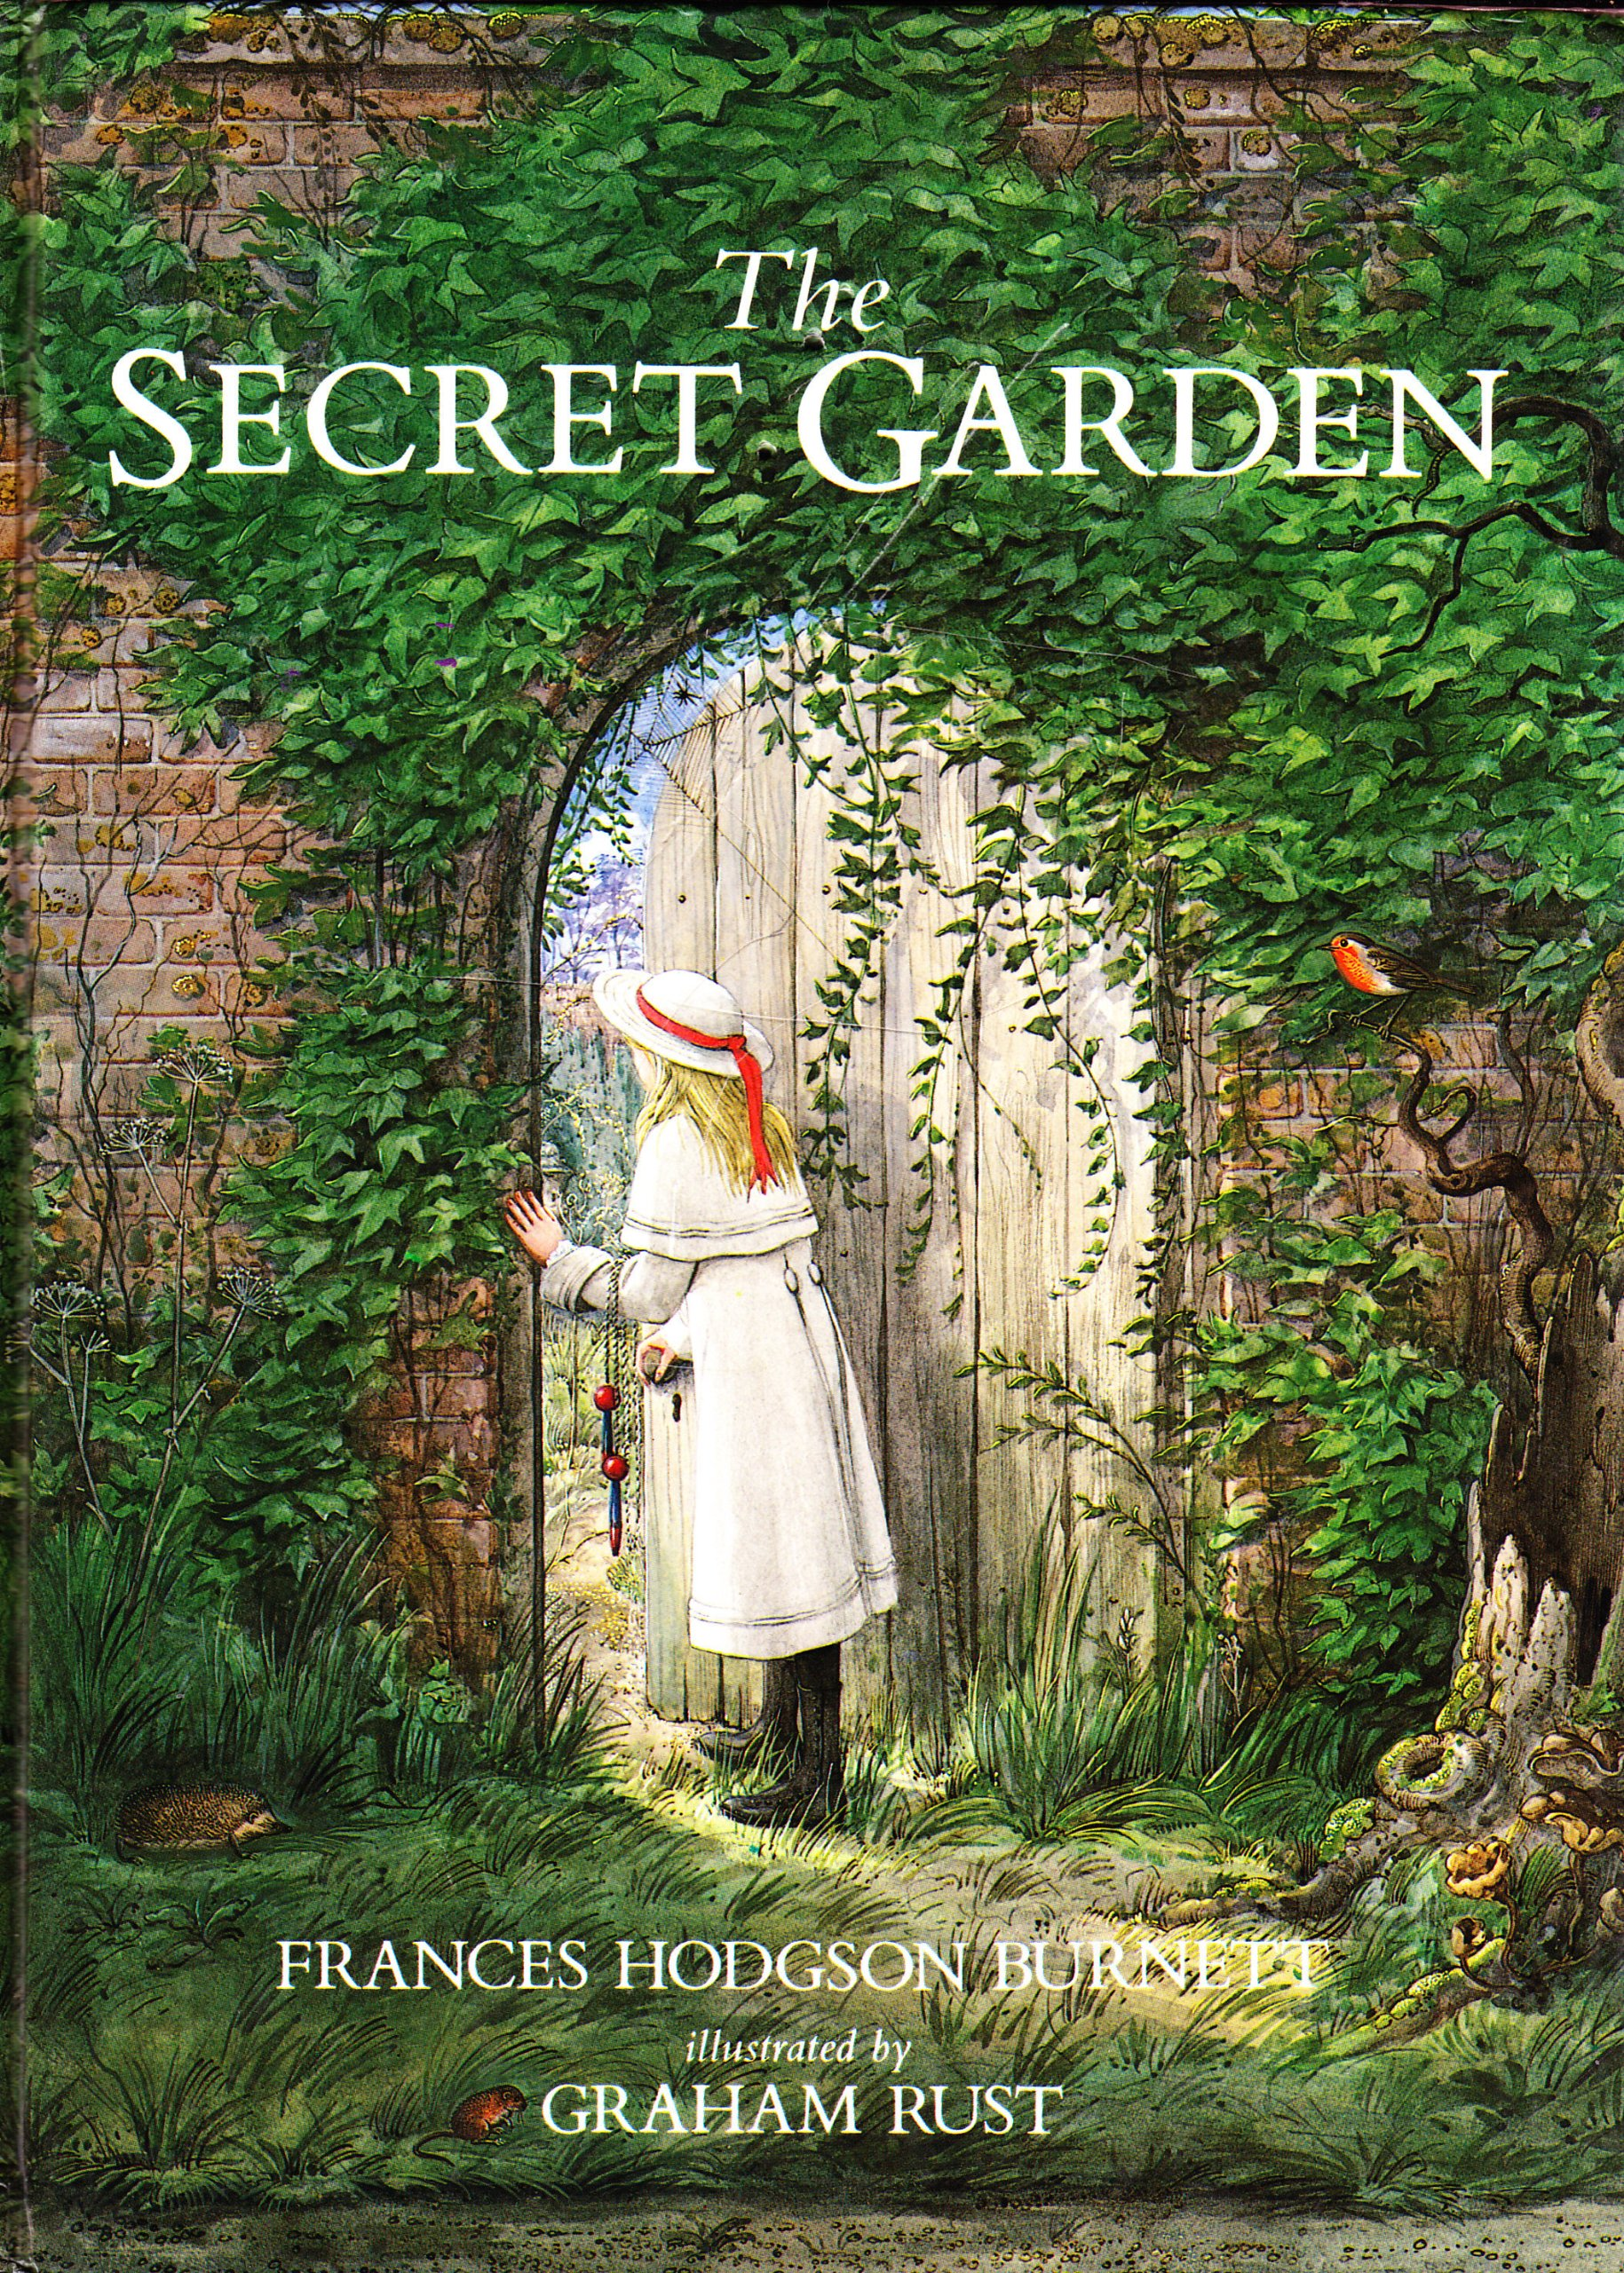 The Secret Garden Is A Novel By Frances Hodgson Burnett. It Was Initially  Published In Serial Form Beginning In 1910, And First Published In Its  Entirety In ...